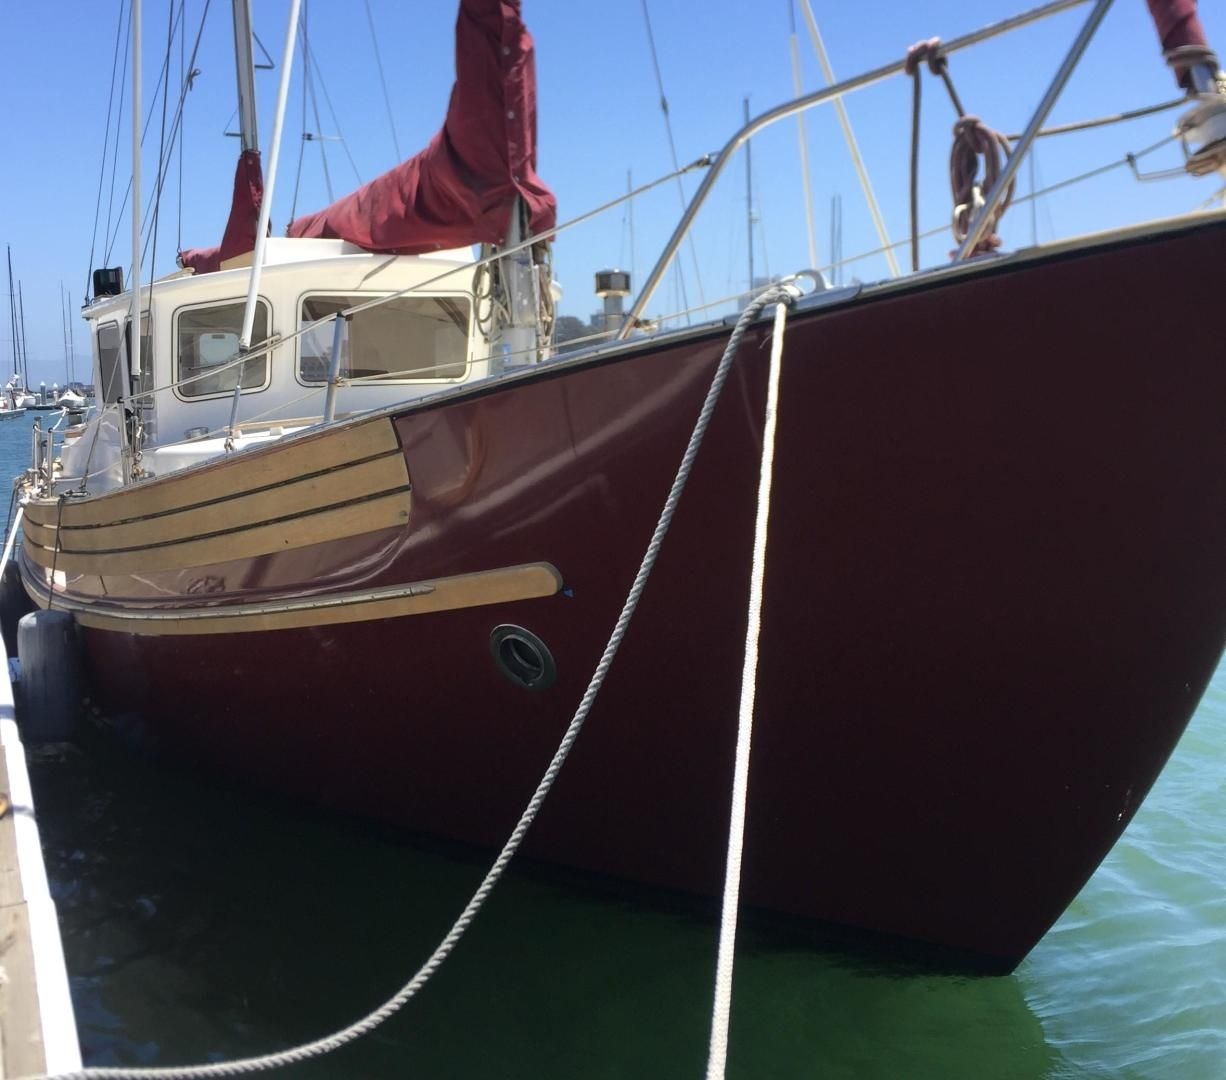 1985 Used Fisher 34 Pilothouse Sailboat For Sale 89 000